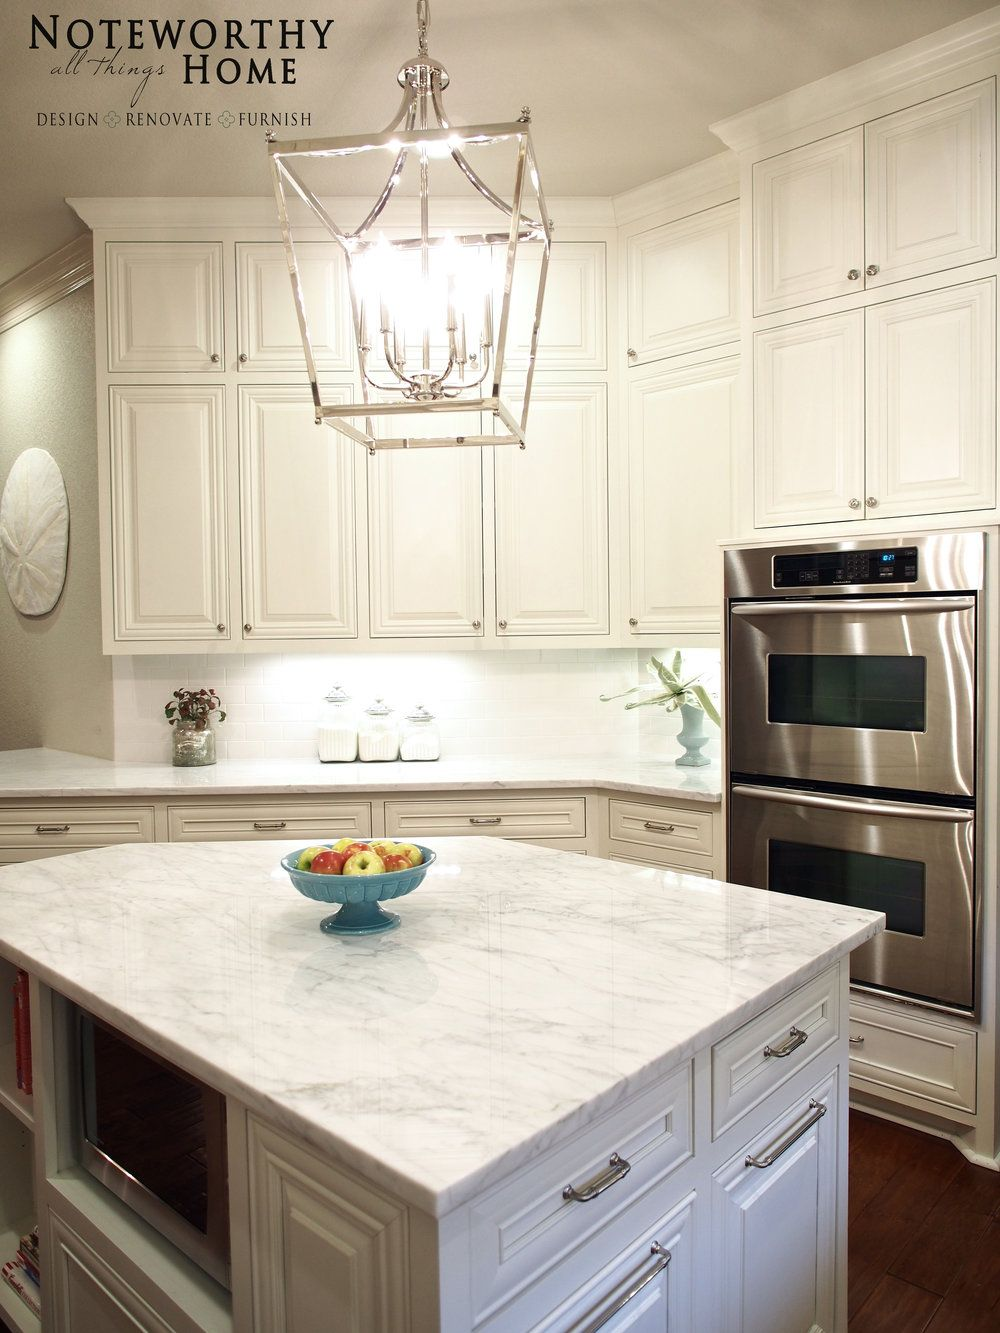 Painted Marble Countertops Carrara Marble Countertop Painted Knotty Alder Painted Cabinetry